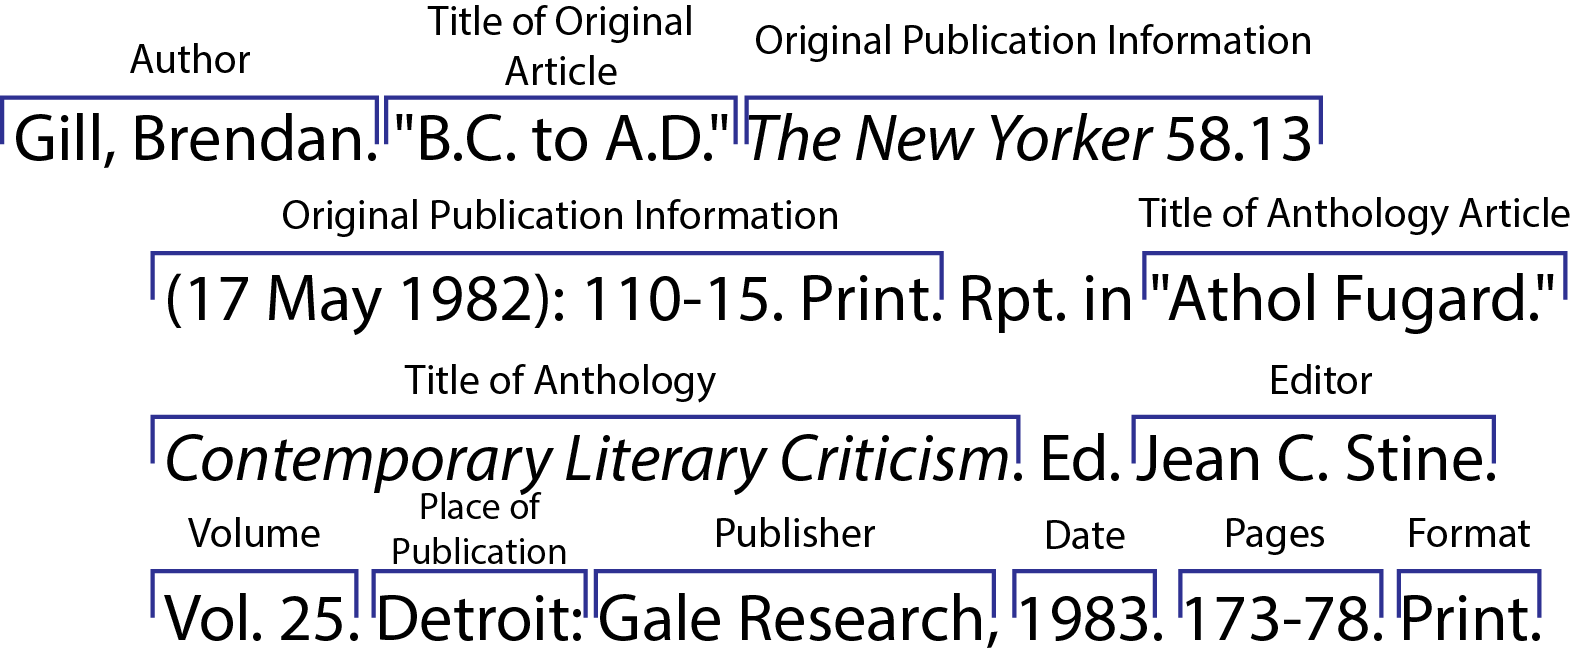 MLA Print Previously Published Article from a Literary Criticism Anthology